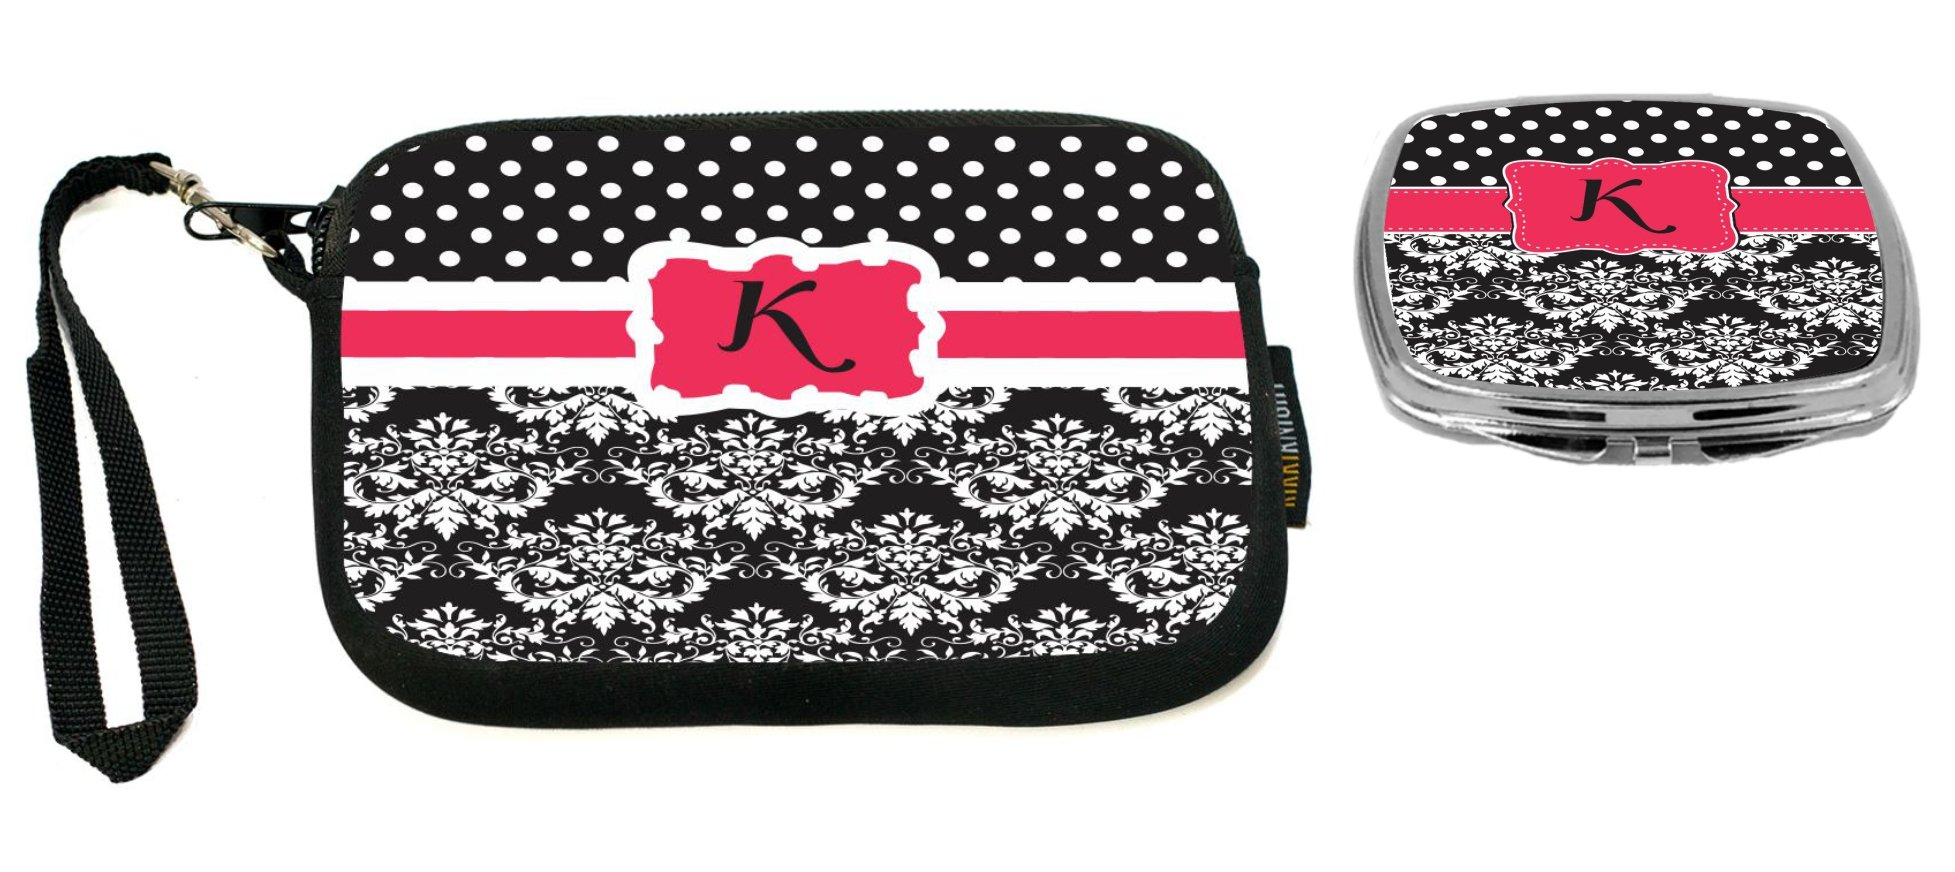 Rikki Knight Letter''K'' Pink Black Damask Dots Design Neoprene Clutch Wristlet with Matching Square Compact Mirror